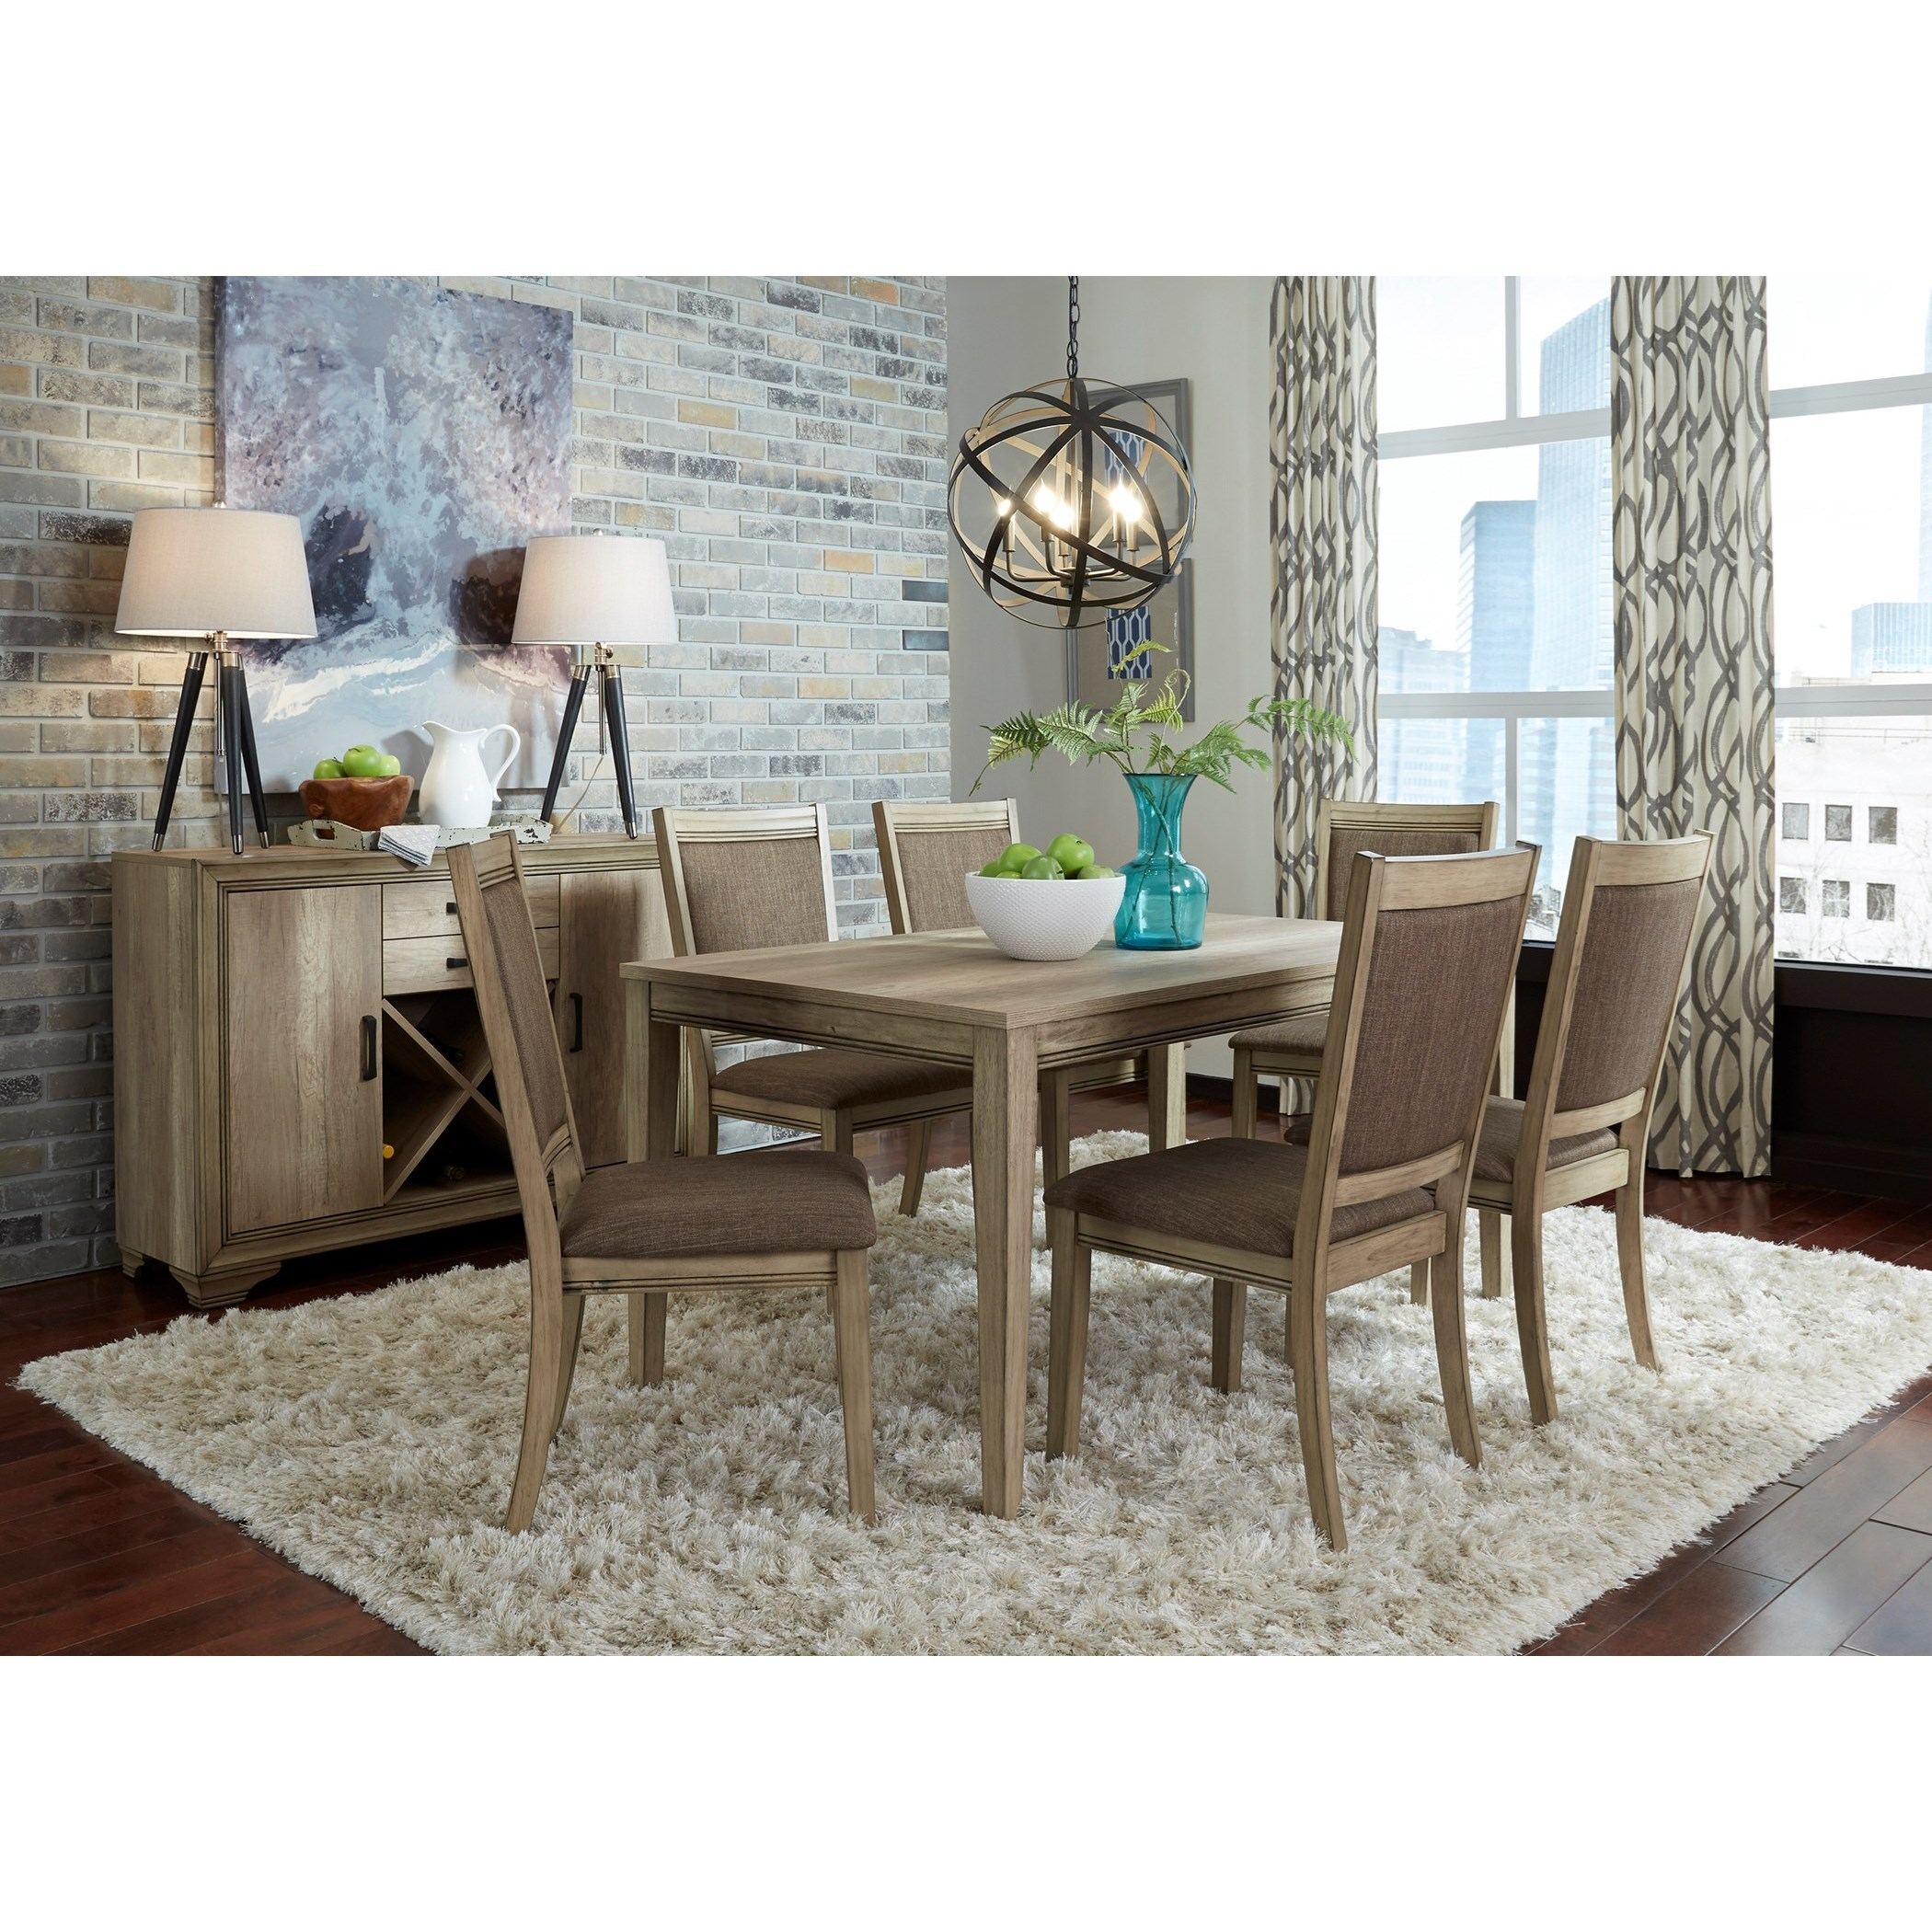 Liberty Dining Room Furniture: Liberty Furniture Sun Valley Dining Room Group